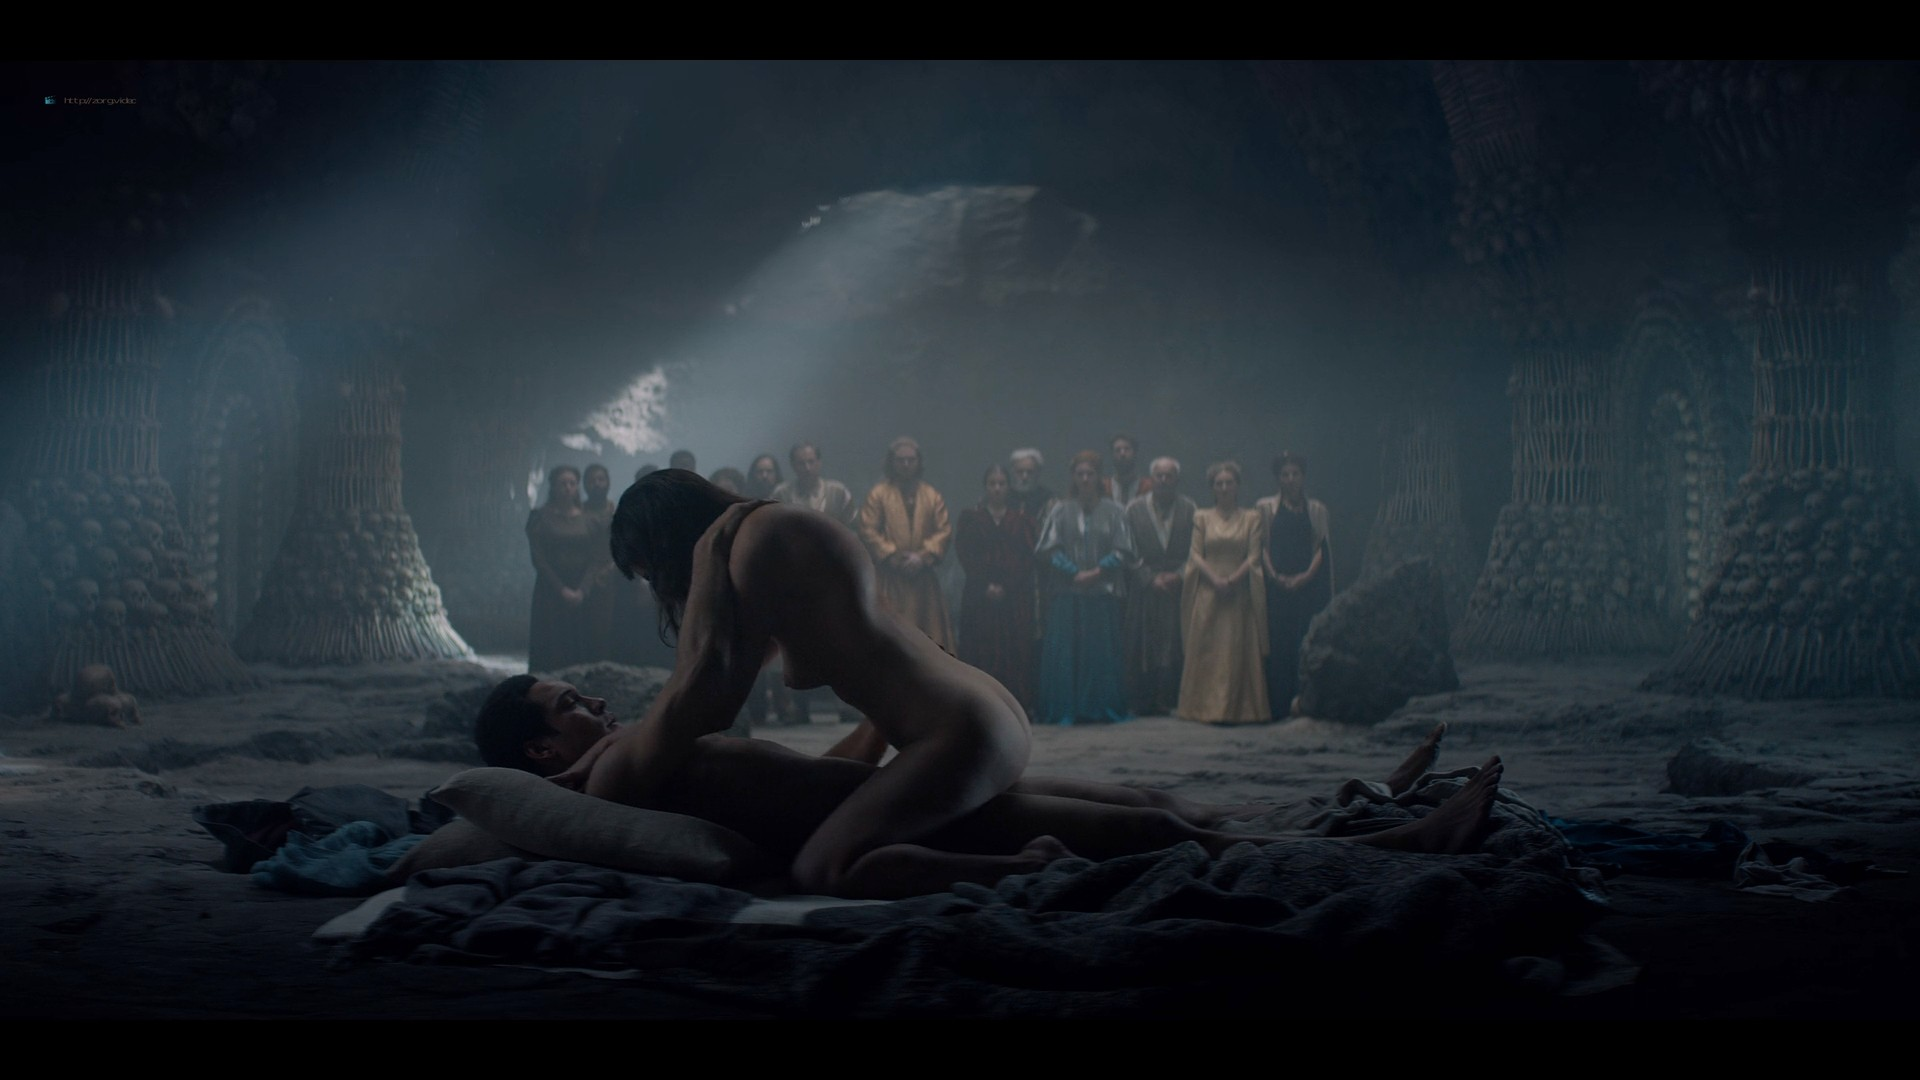 Anya Chalotra nude sex others nude too - The Witcher (2019) s1e1-3 HD 1080p WEB-DL (10)